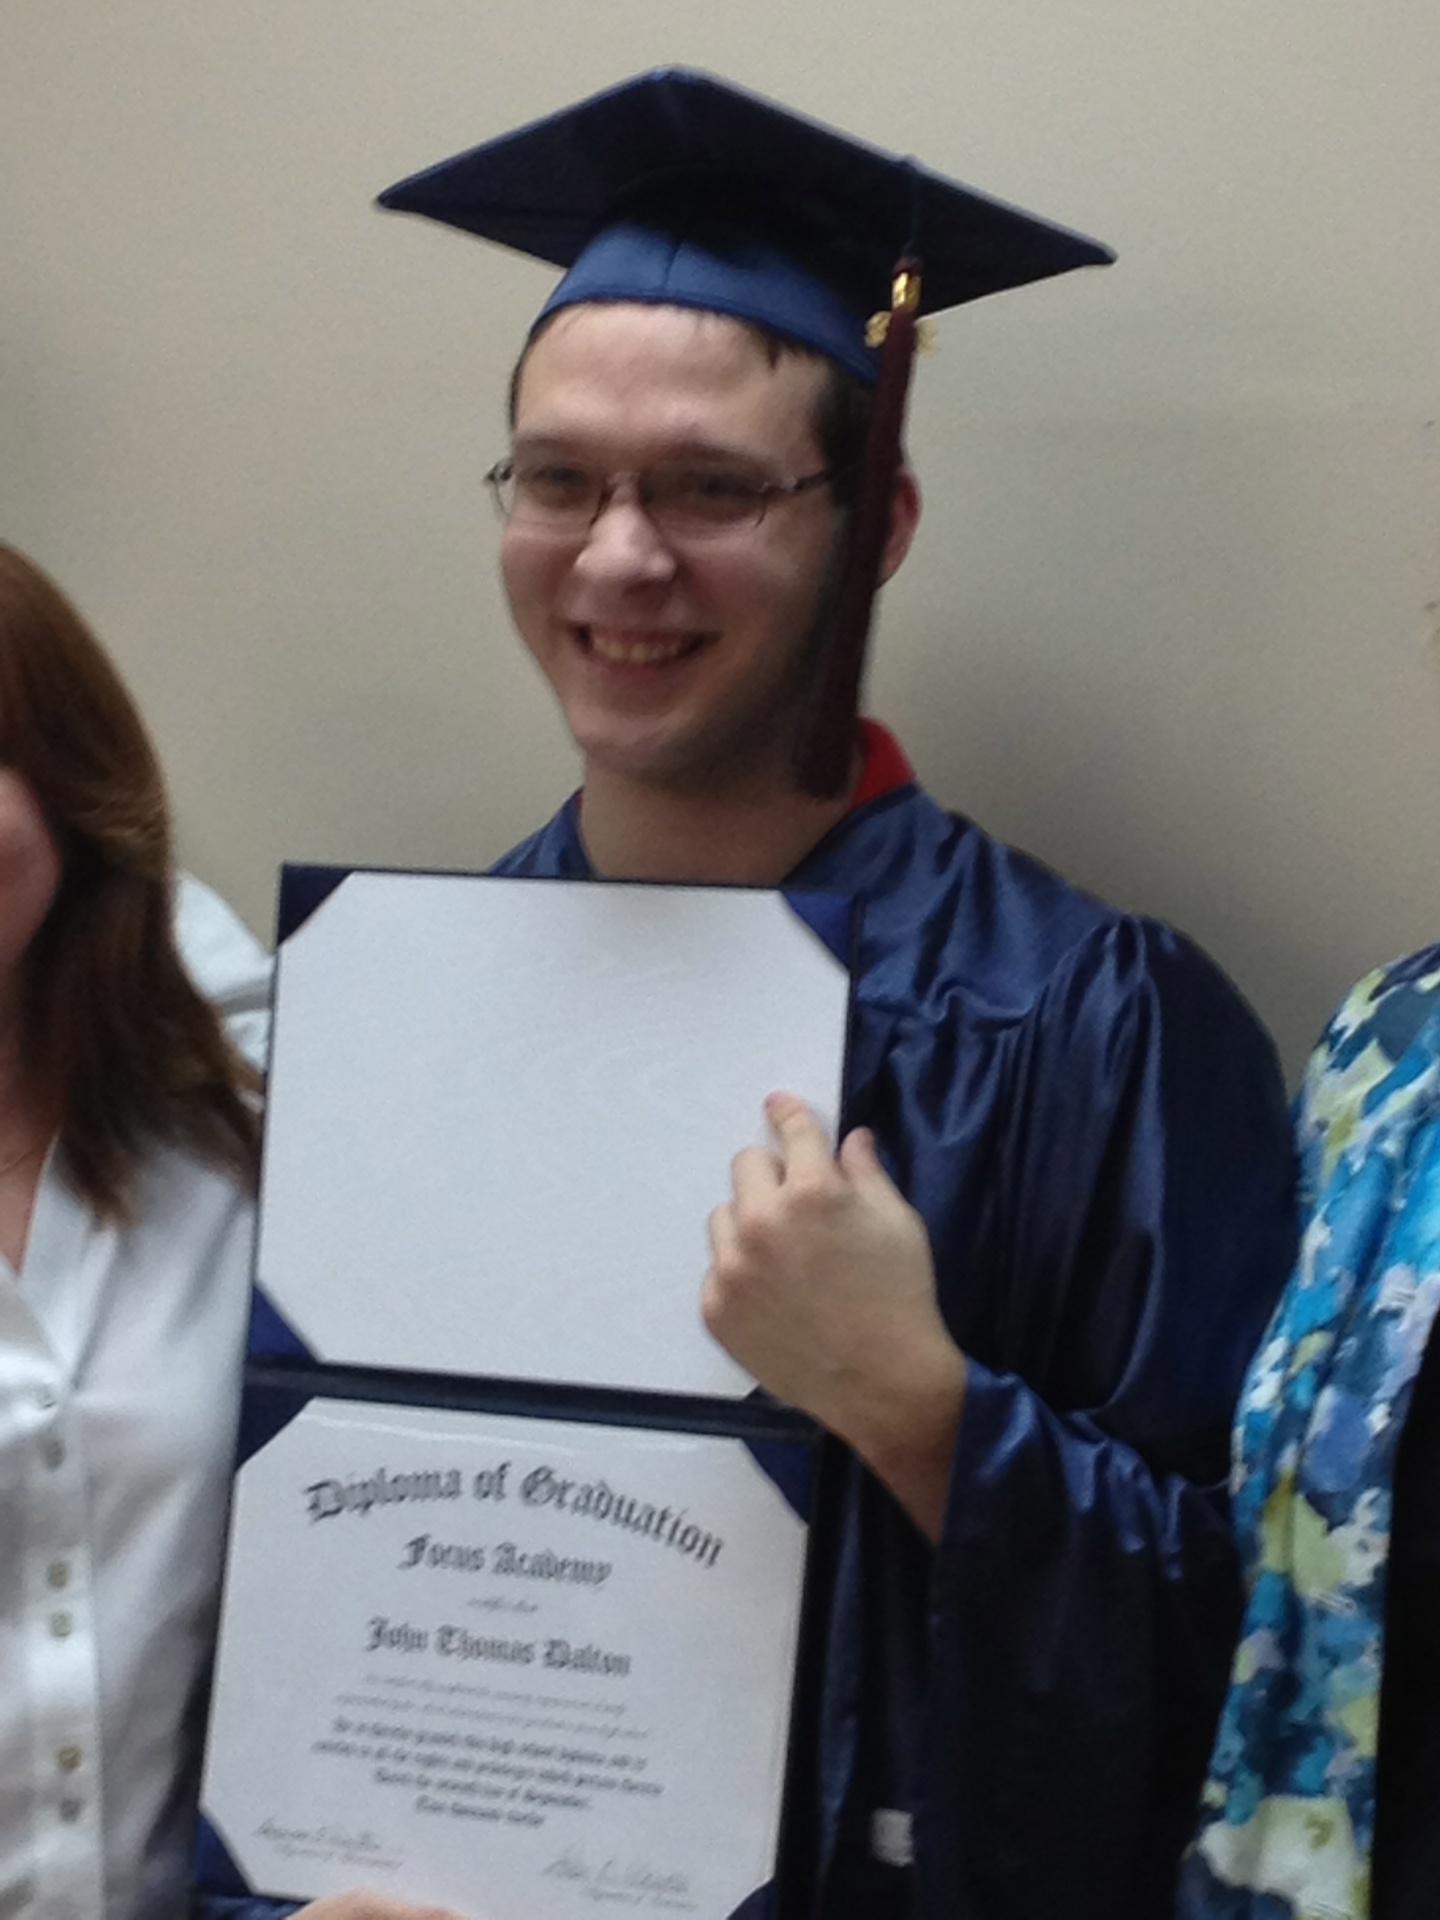 Congrats to our first Katy Graduate!